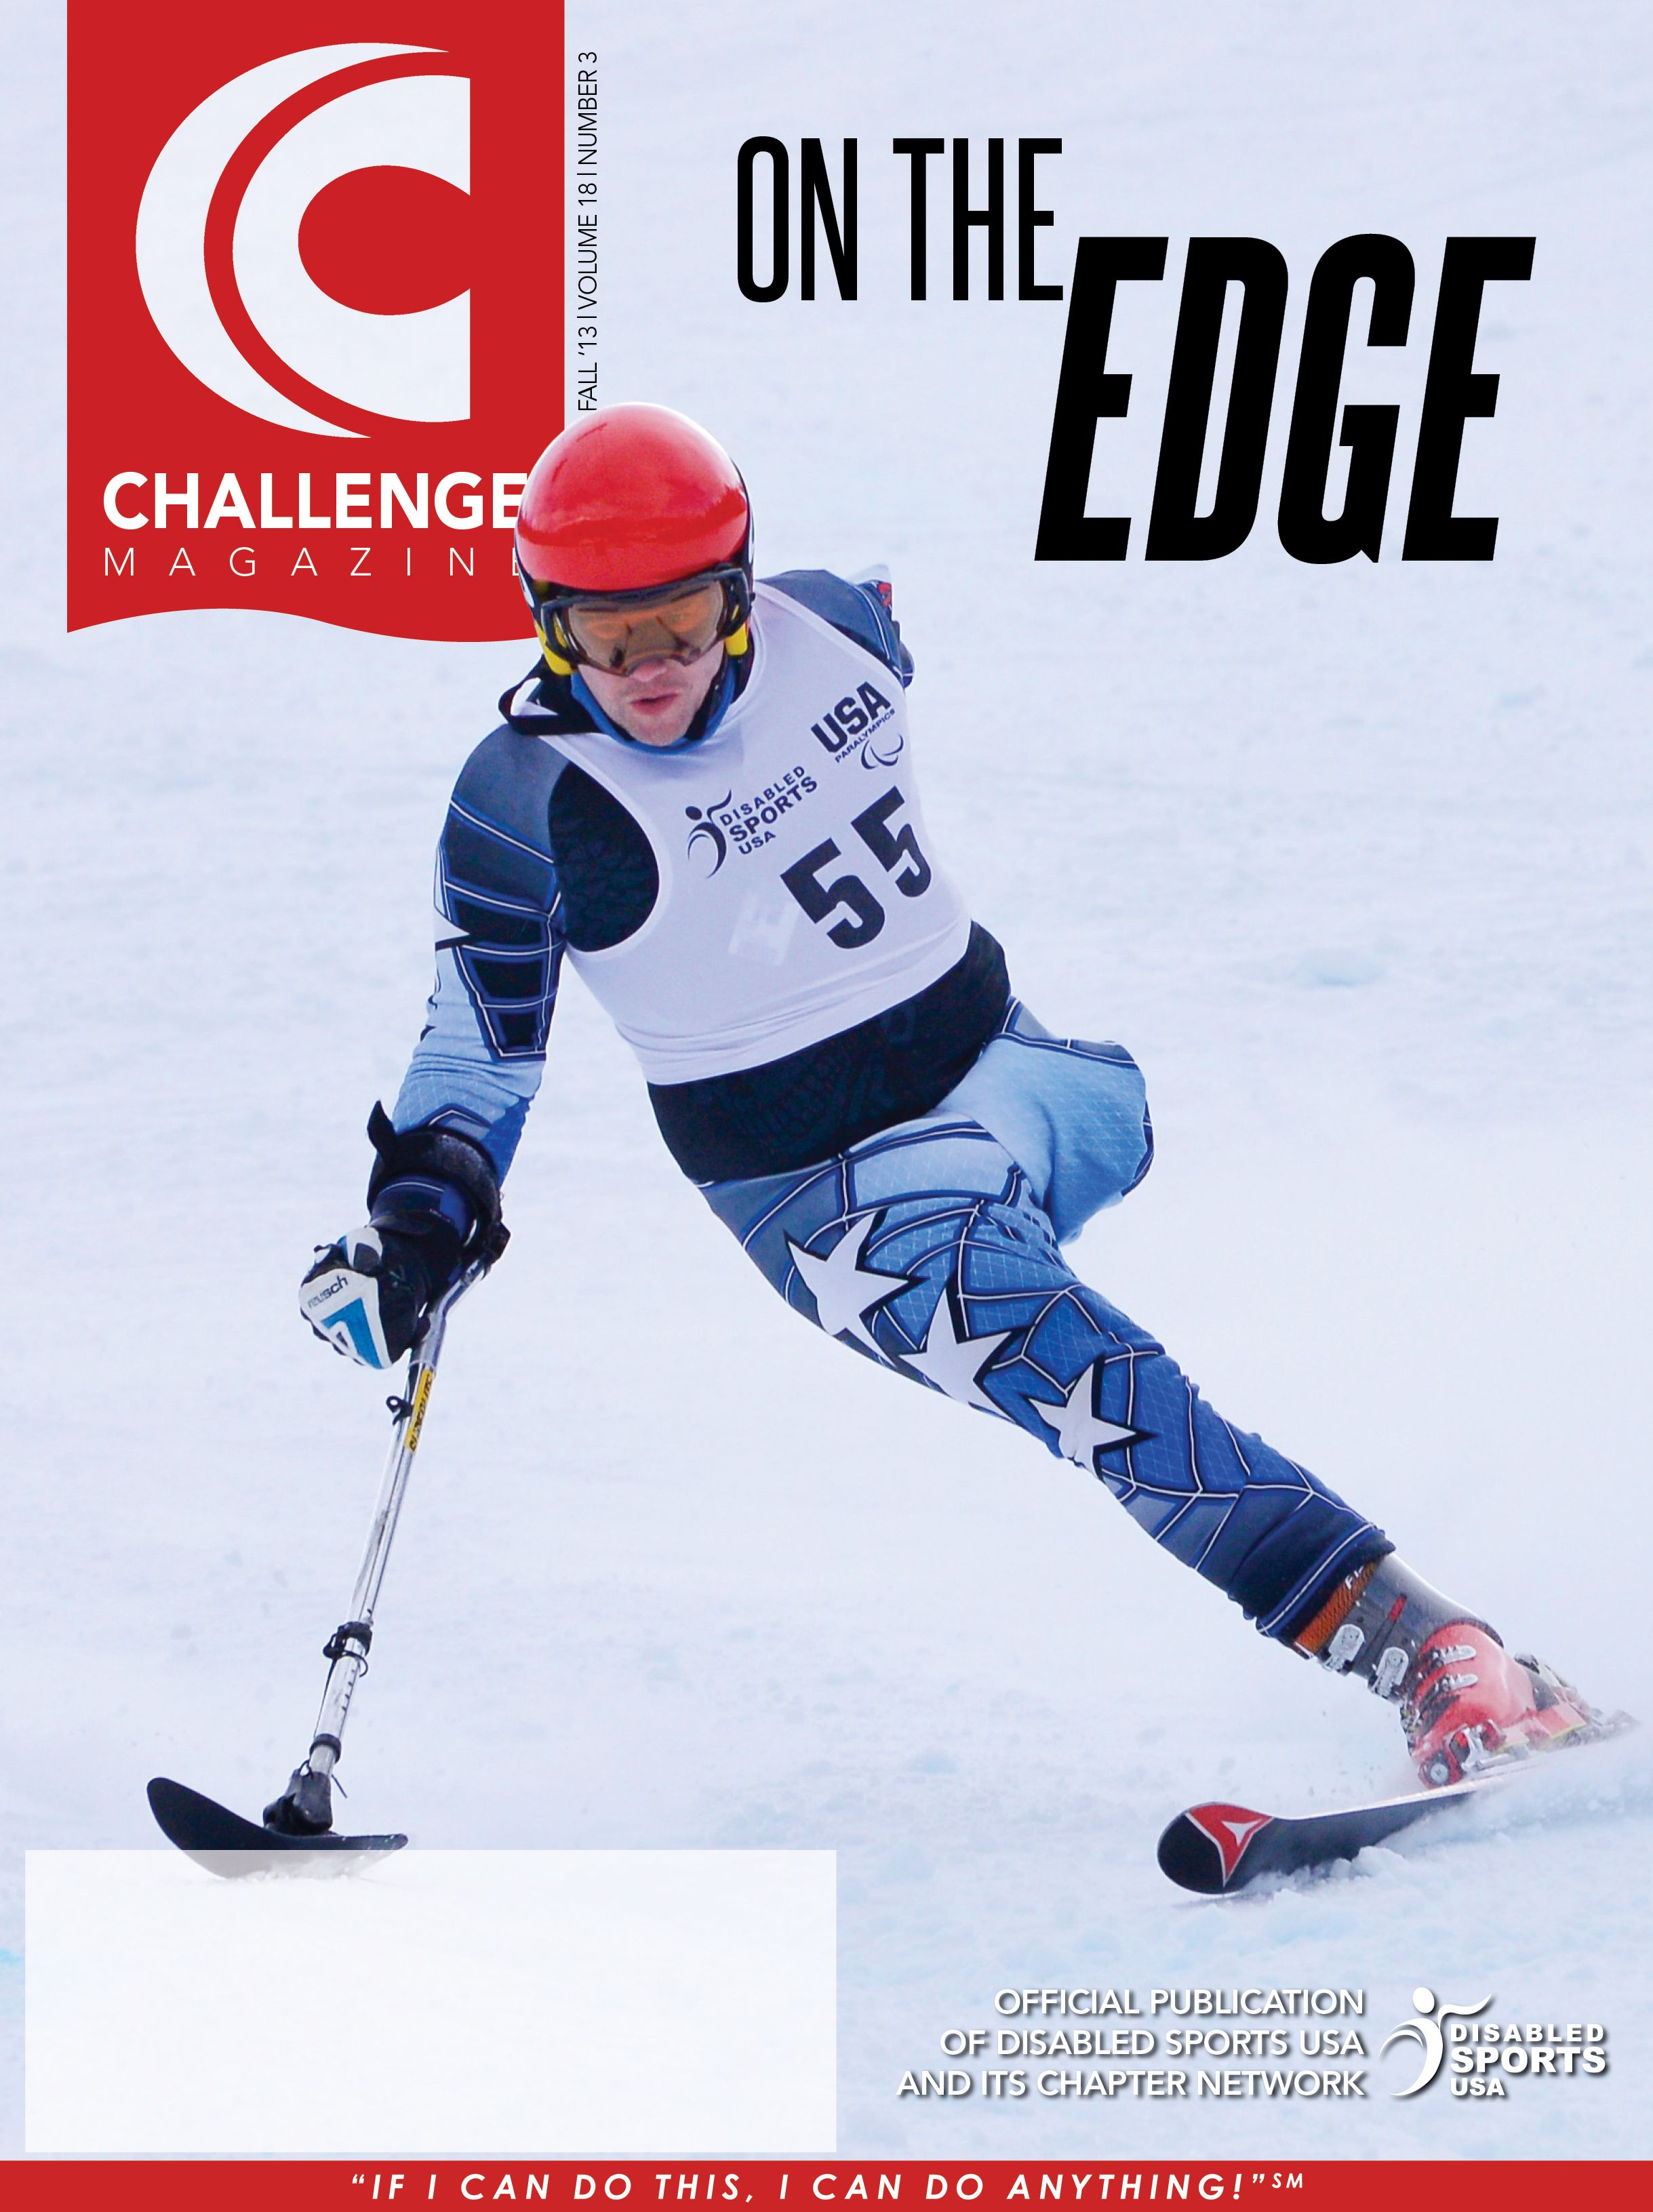 Challenge Magazine Disabled Sports Usa With Images Learning Disabilities Challenges Sports